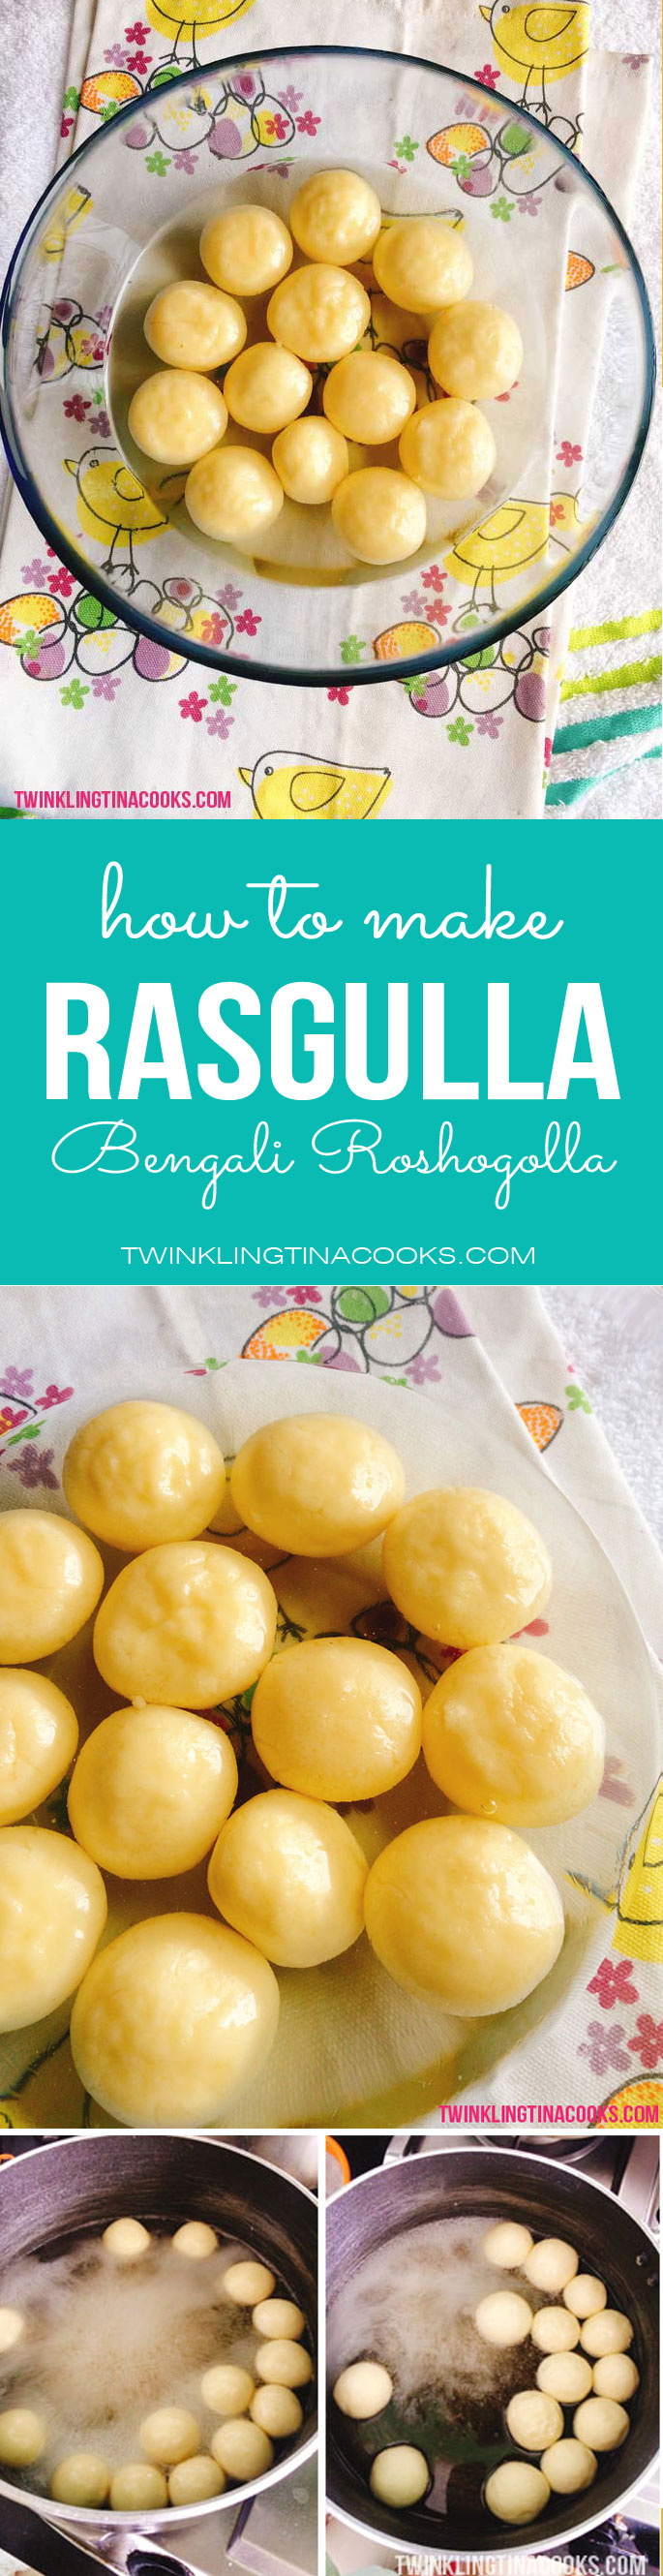 rasgulla-recipe-how-to-make-bengali-rasgulla-pin